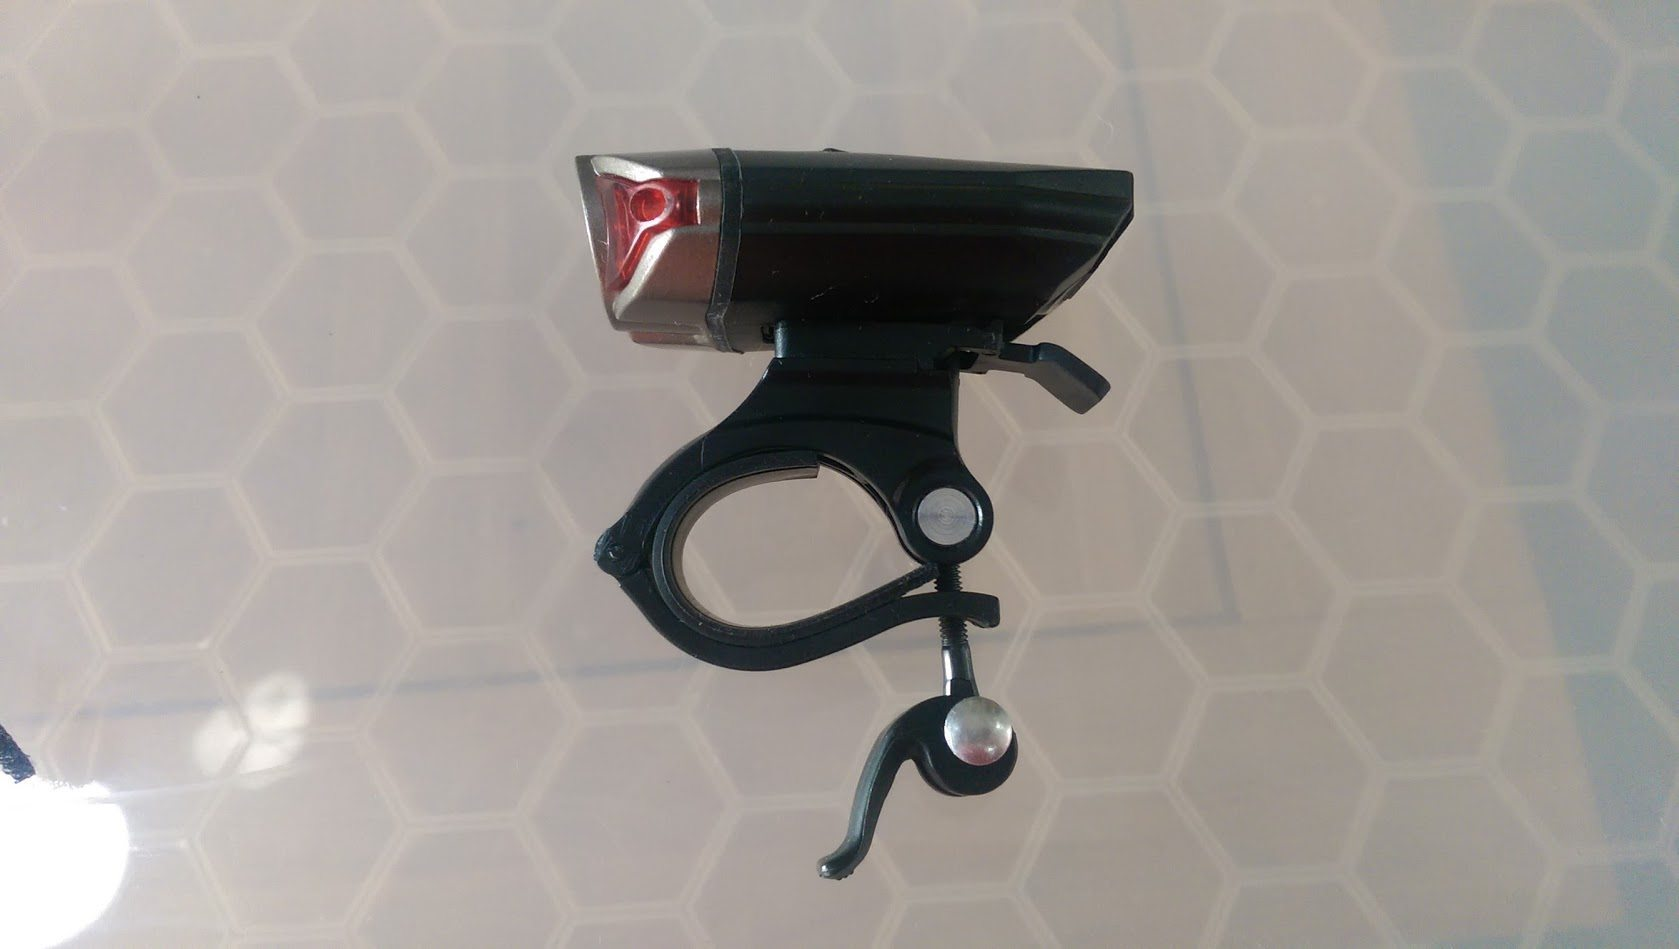 Aootek Bike Light